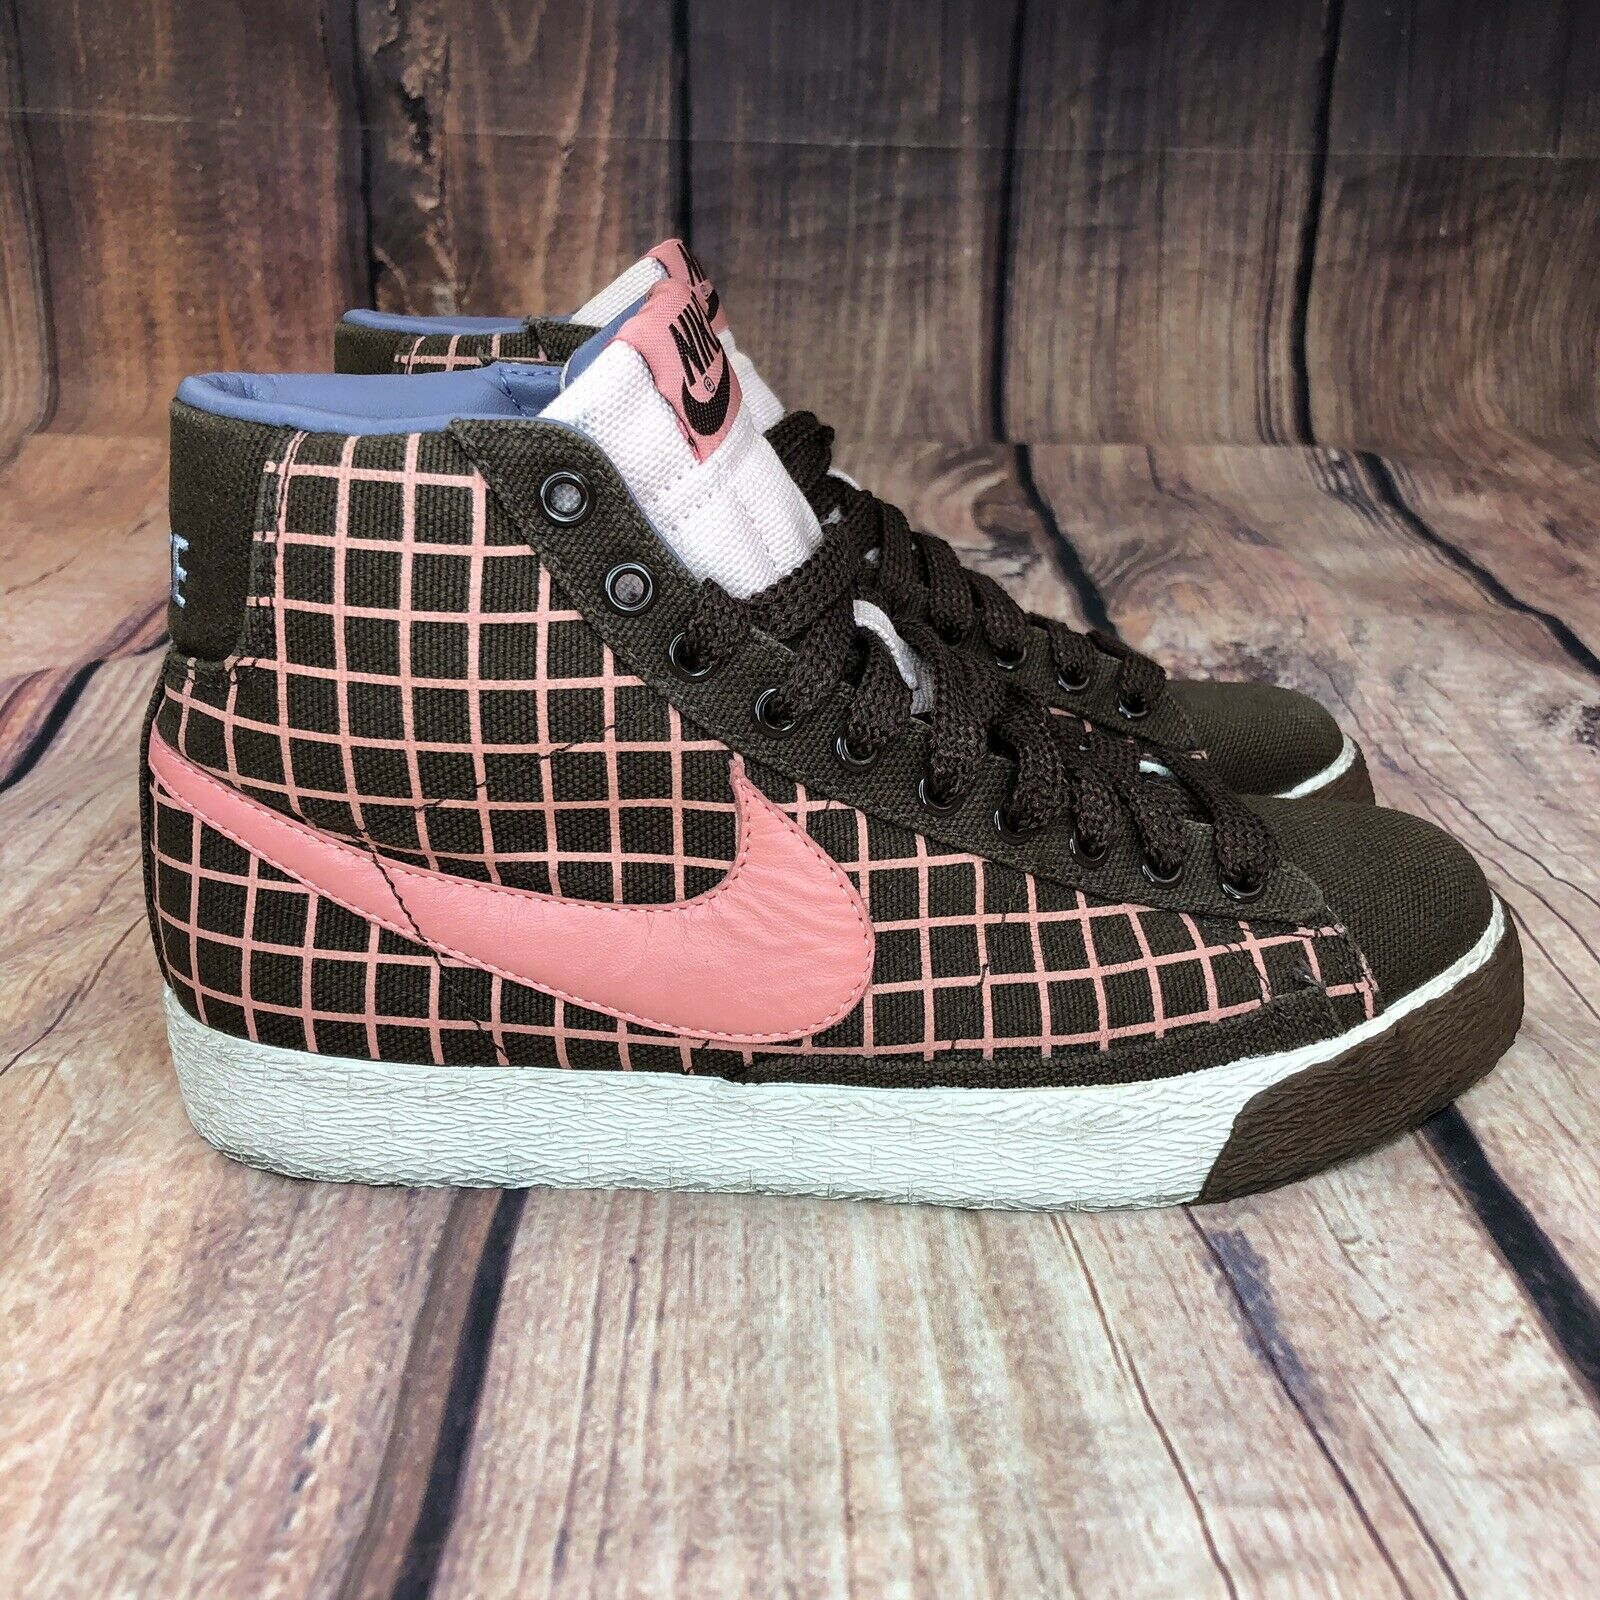 Nike Air Blazer Basketball shoes Women Size 7 Athletic shoes RARE